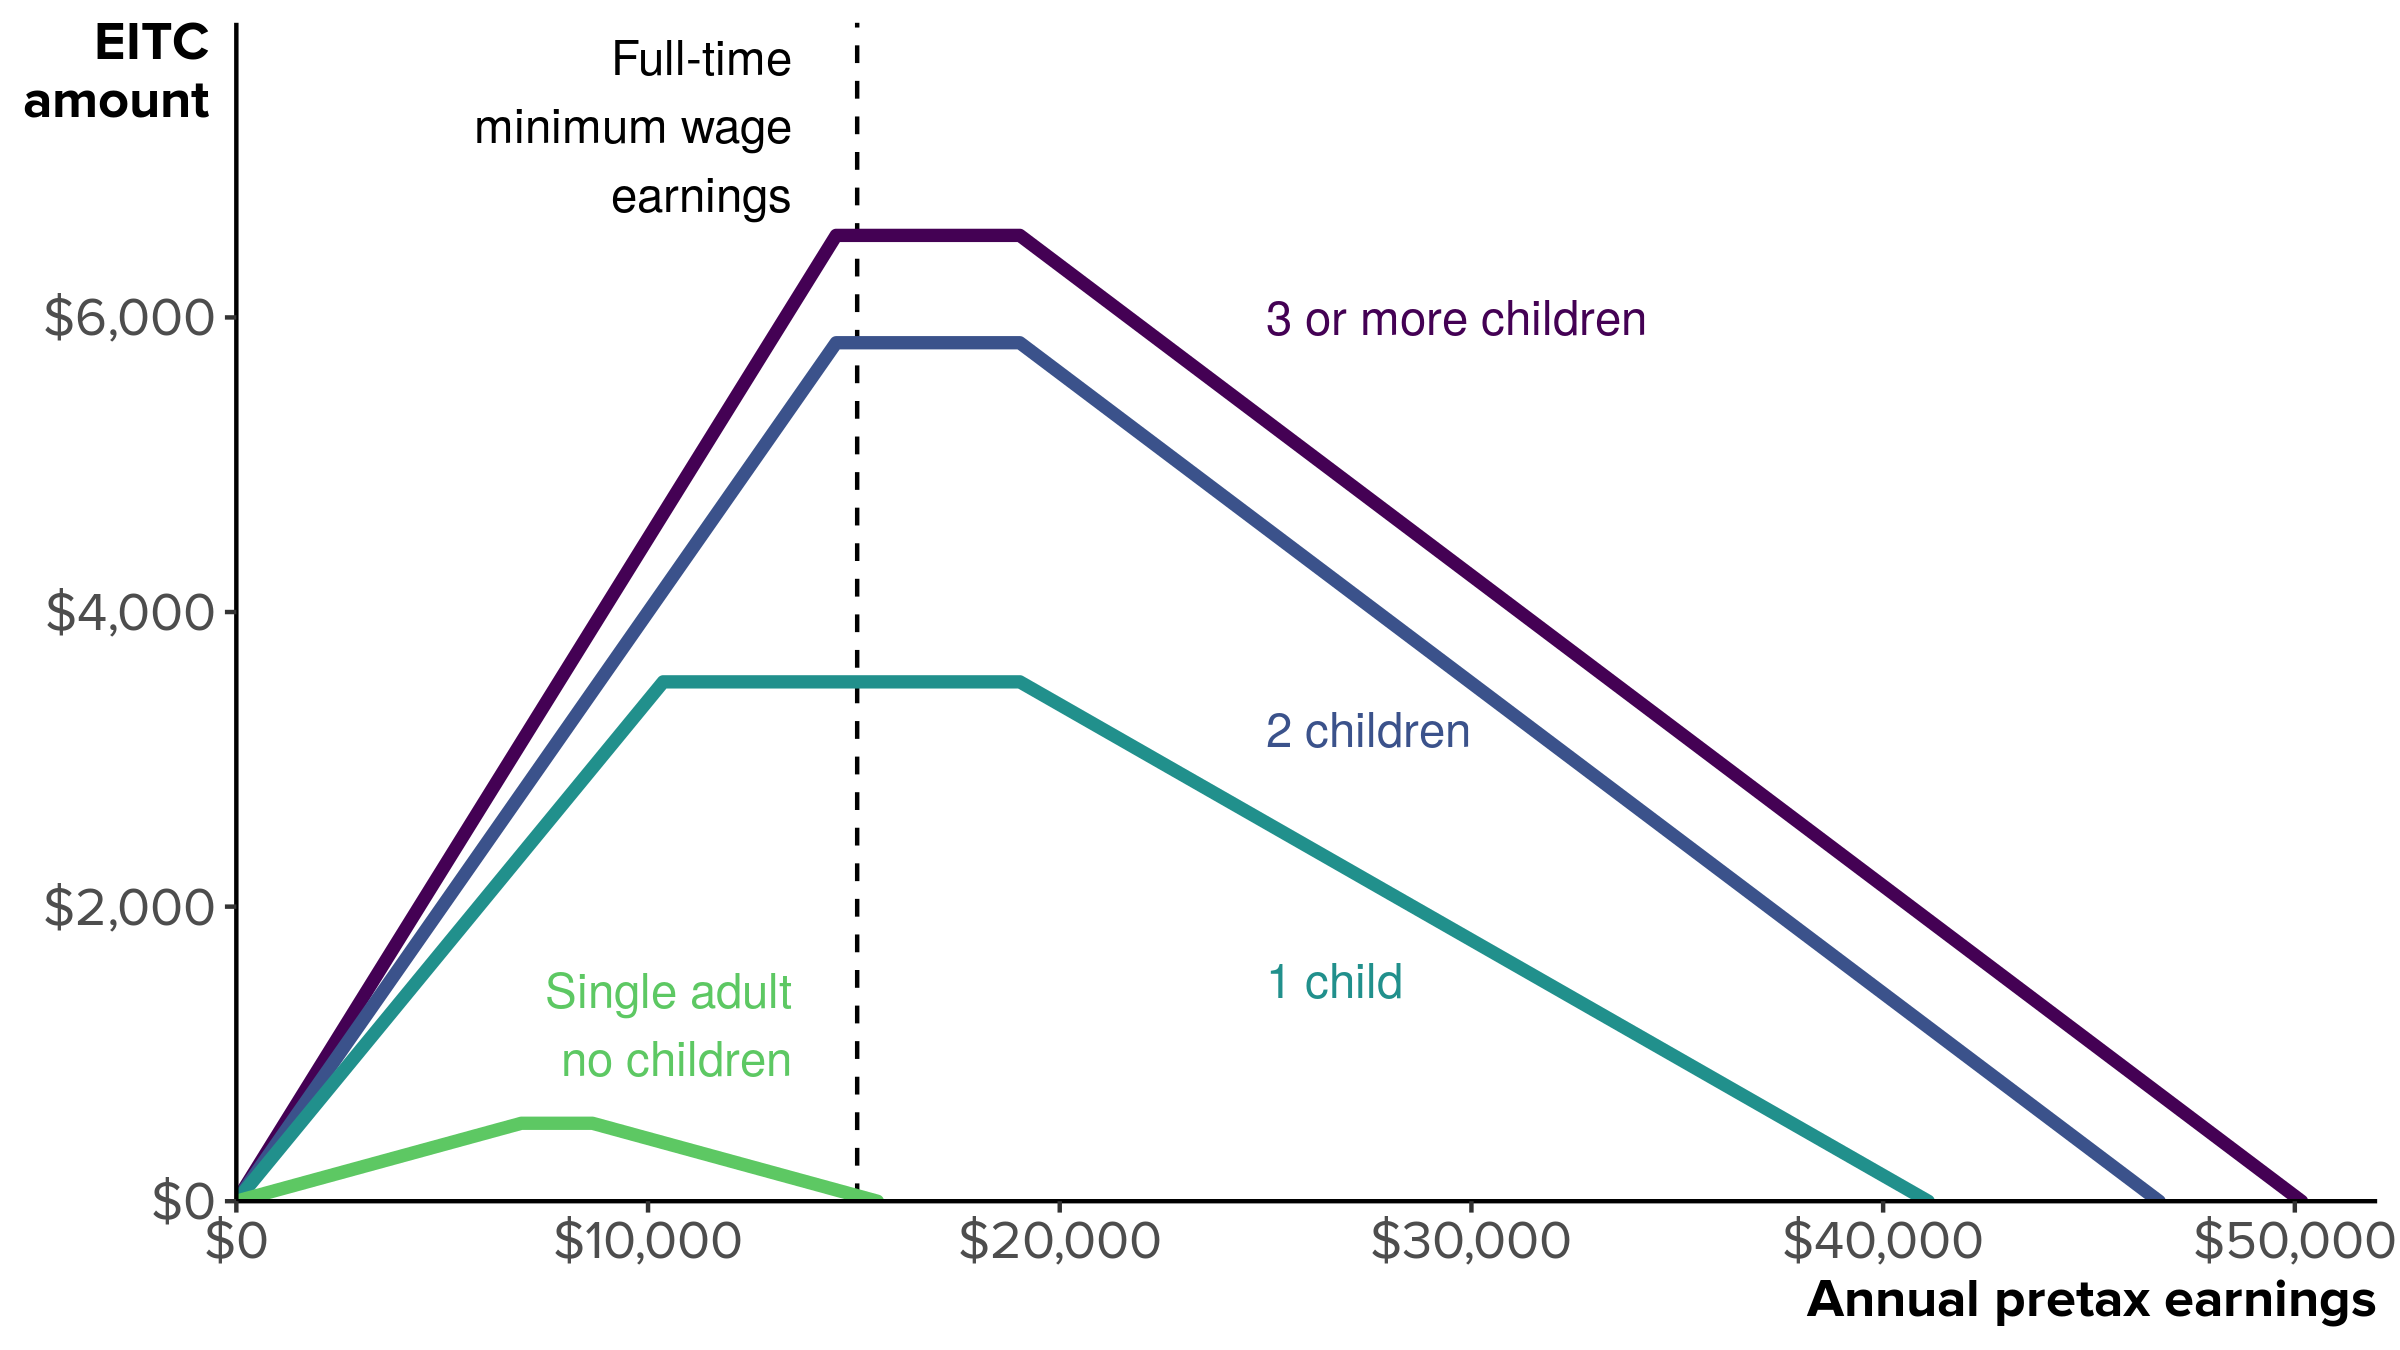 Value of the 2019 Earned Income Tax Credit for a single-parent family, by pretax earnings and number of children